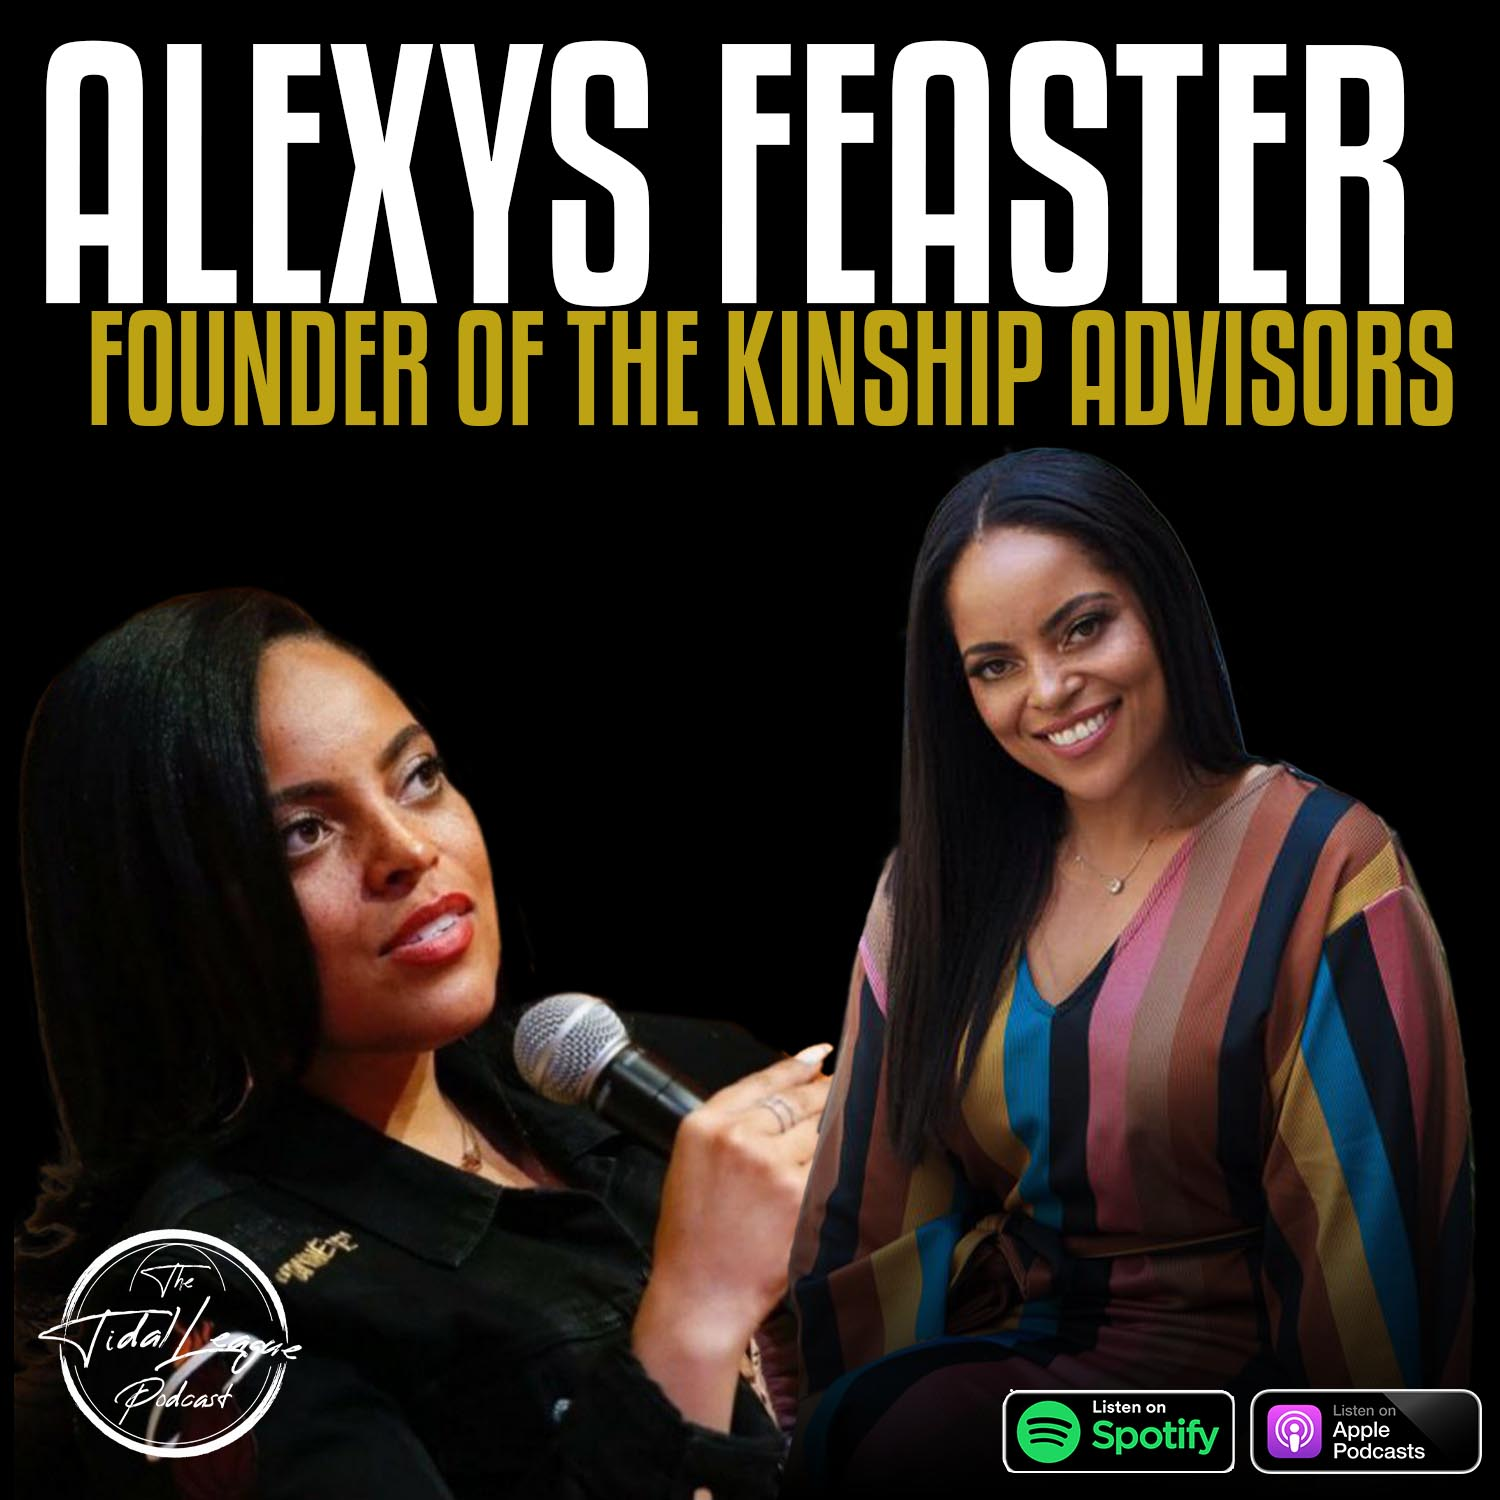 Alexys Feaster Founder & Chief Impact Officer The Kinship Advisors